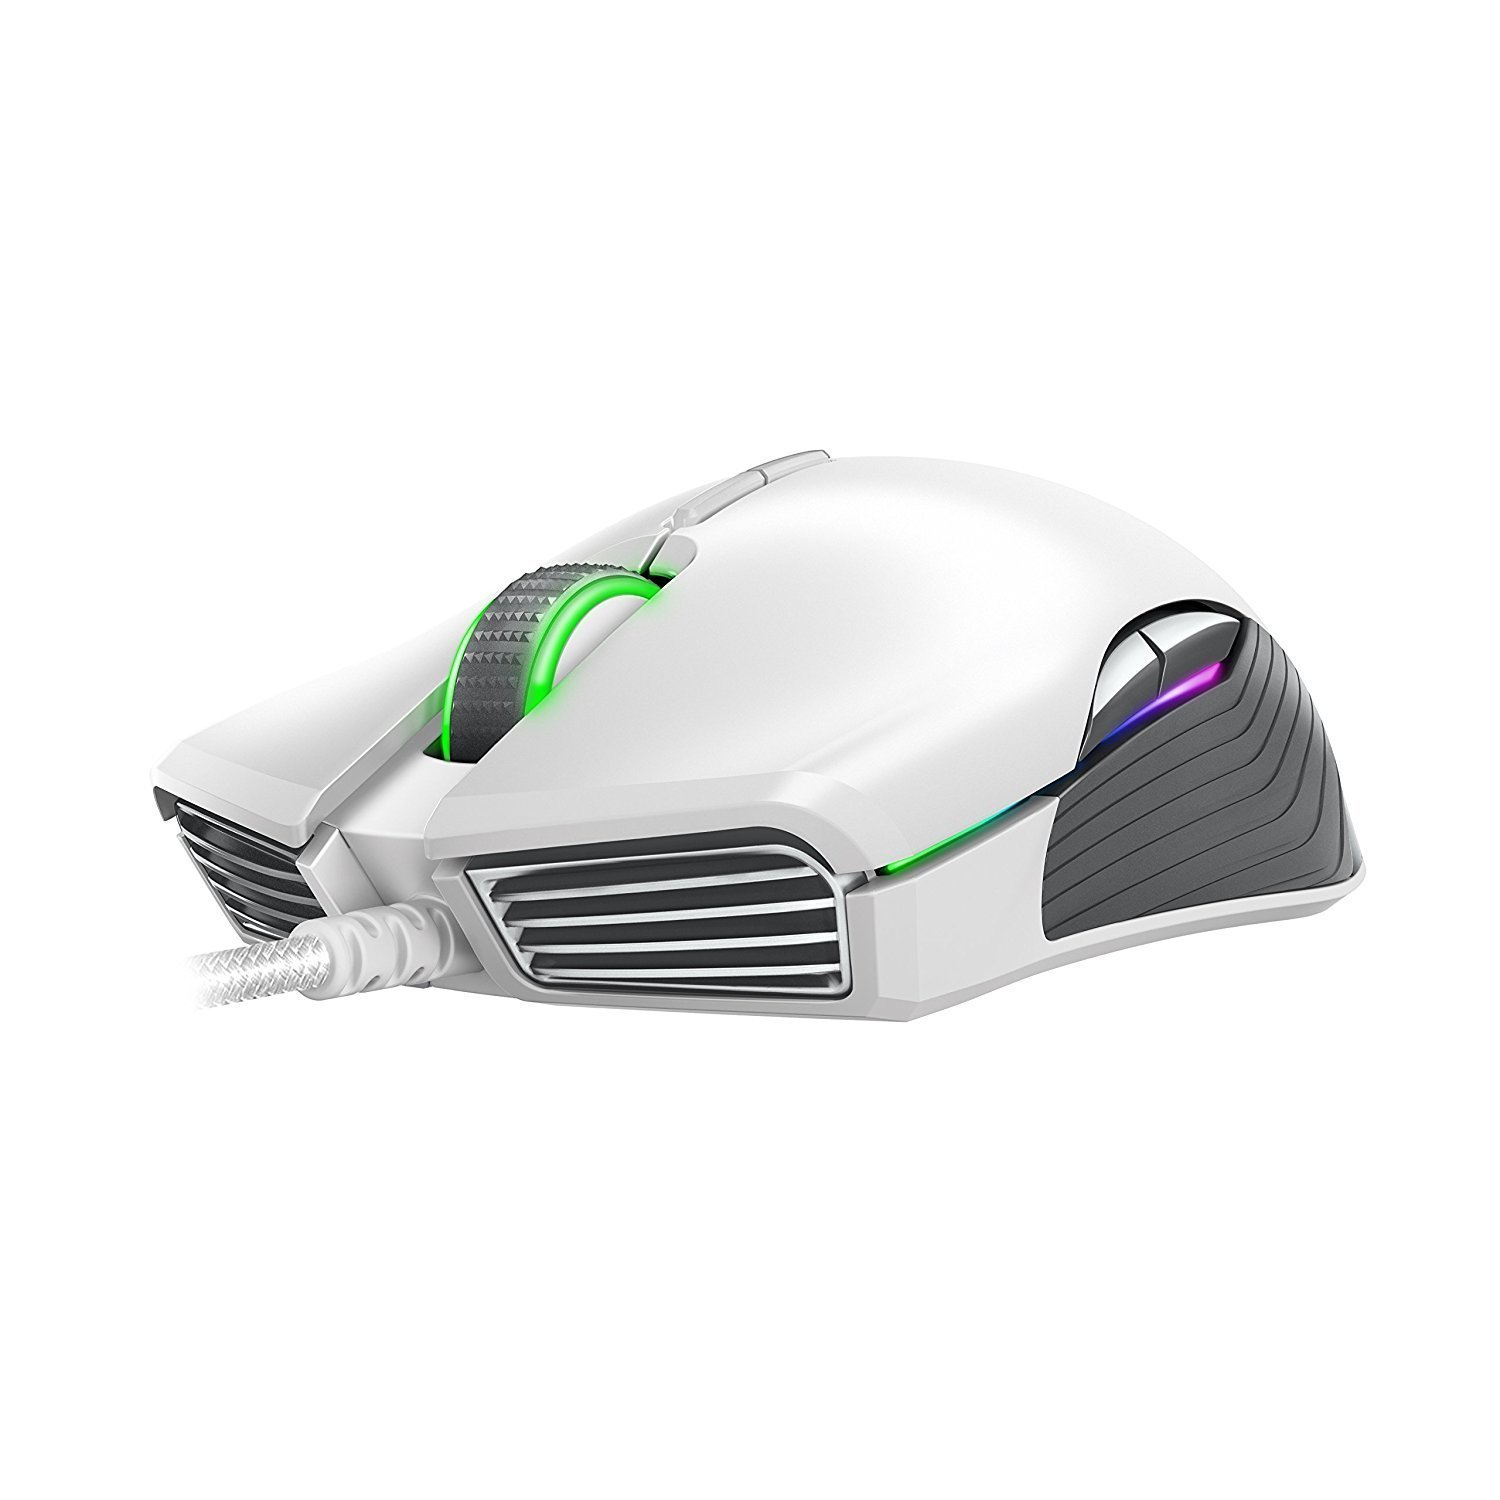 Razer Lancehead Tournament Edition Ambidextrous Gaming Mouse - Mercury for PC Games image